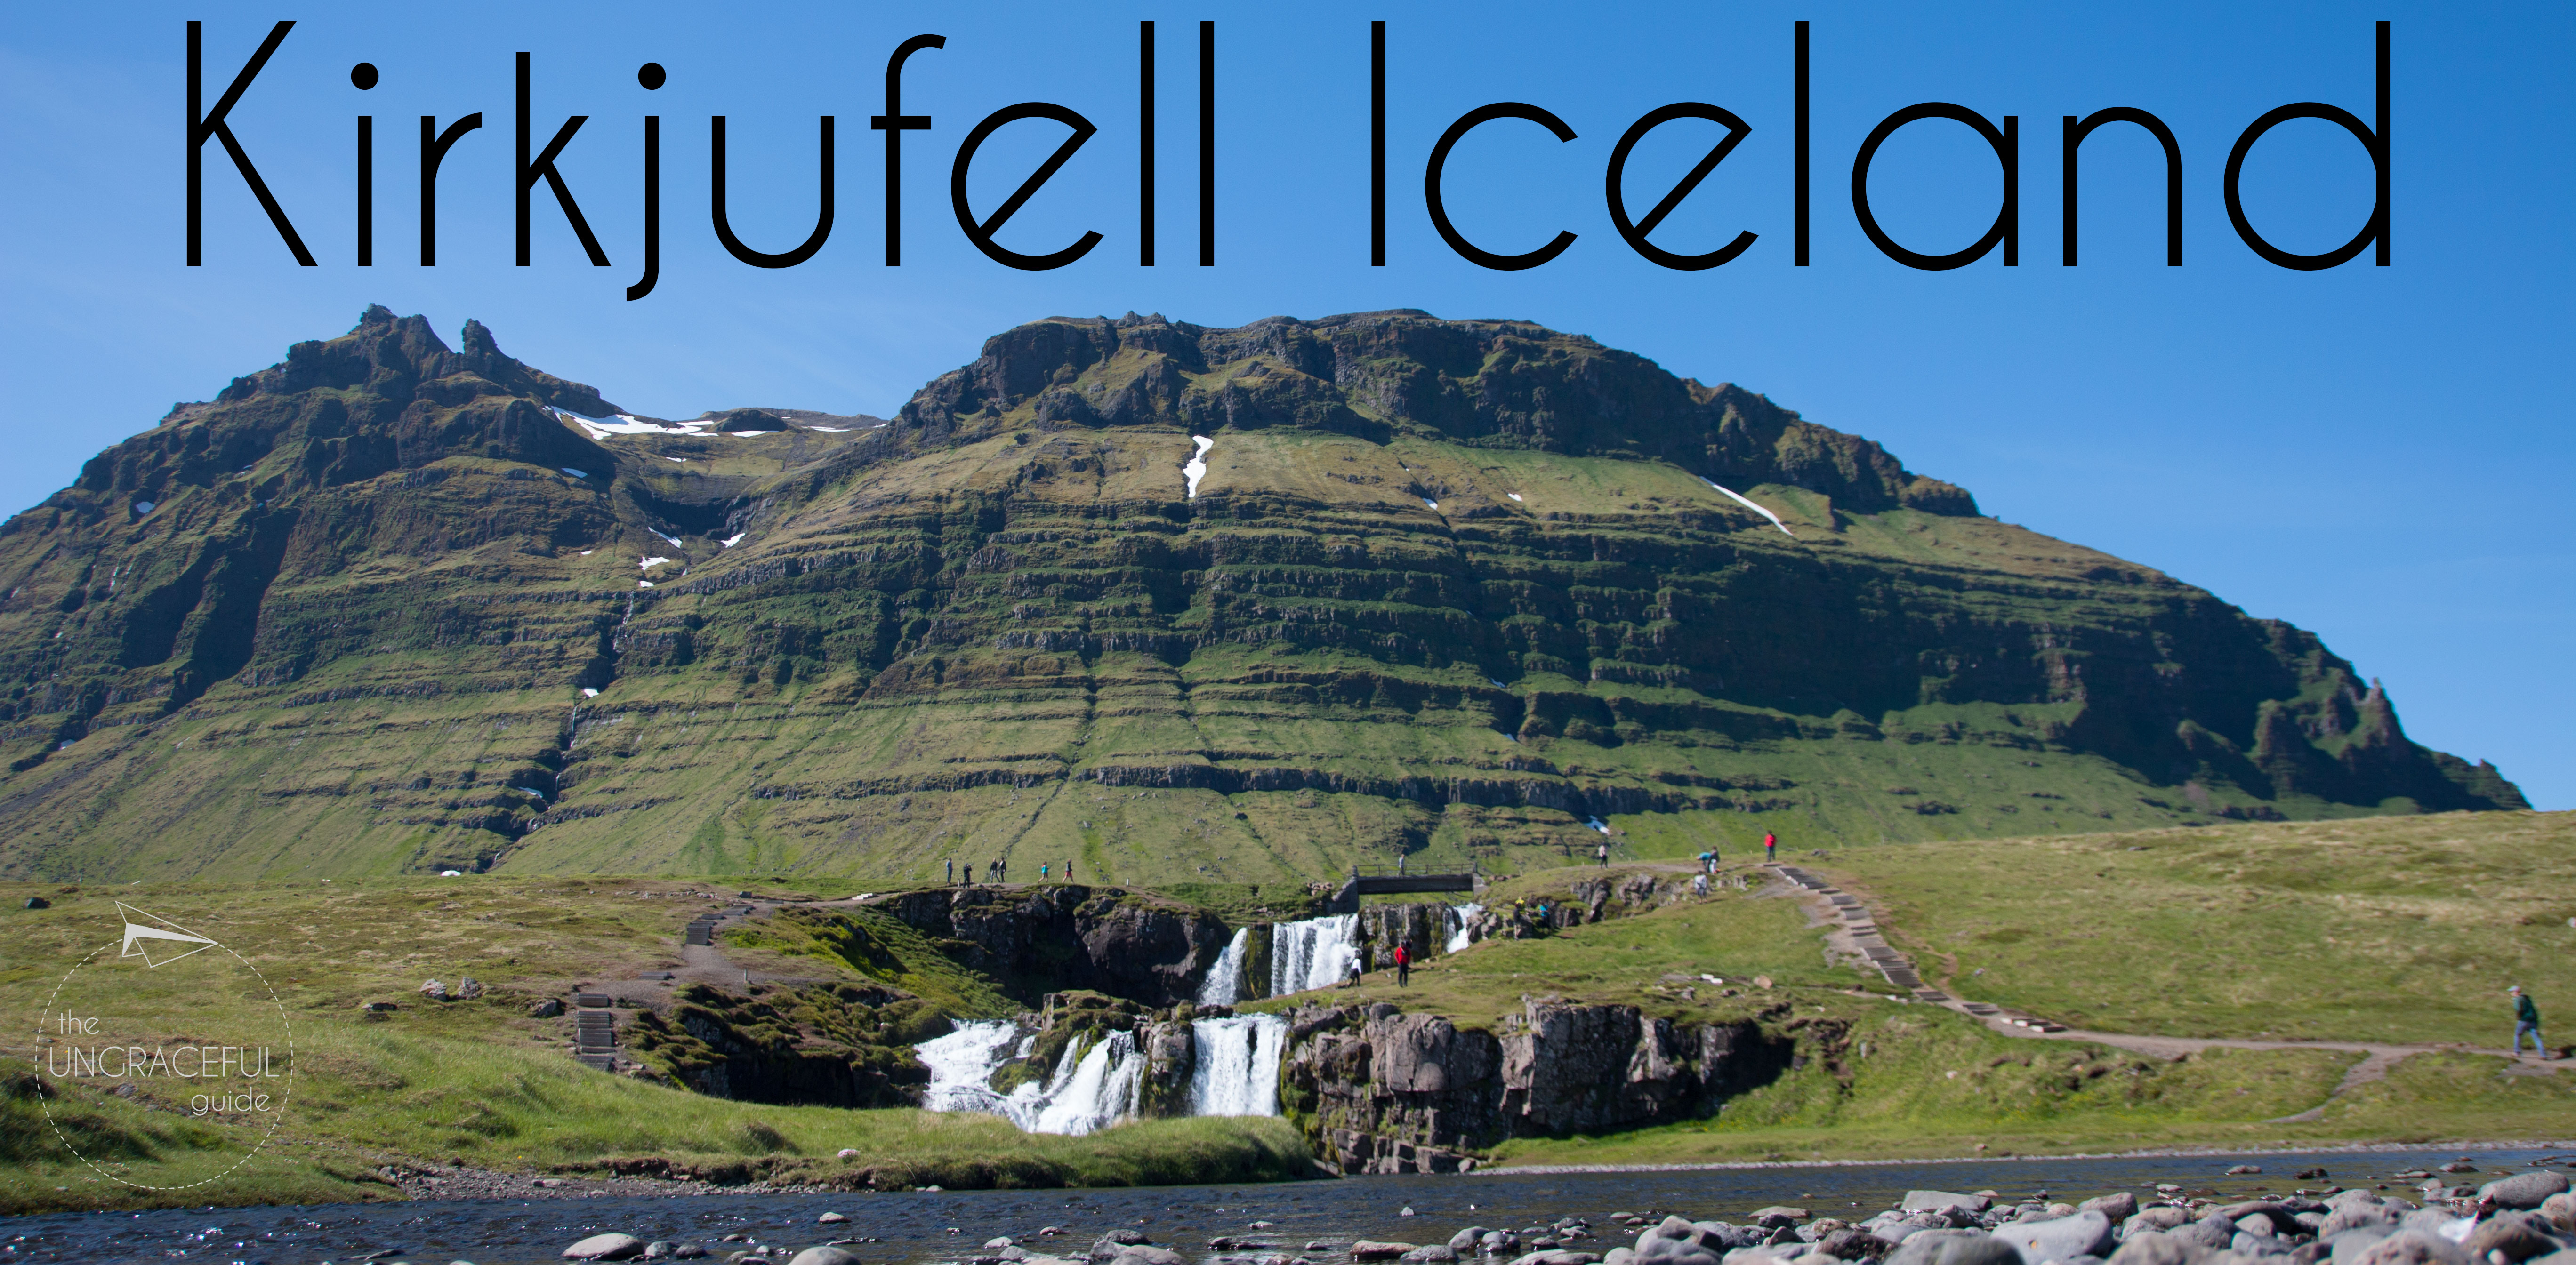 """<img src=""""images/"""" width=""""800"""" height=""""600"""" alt=""""iceland - Kirkjufell mountain - Iceland: How to get the most on a budget"""">"""